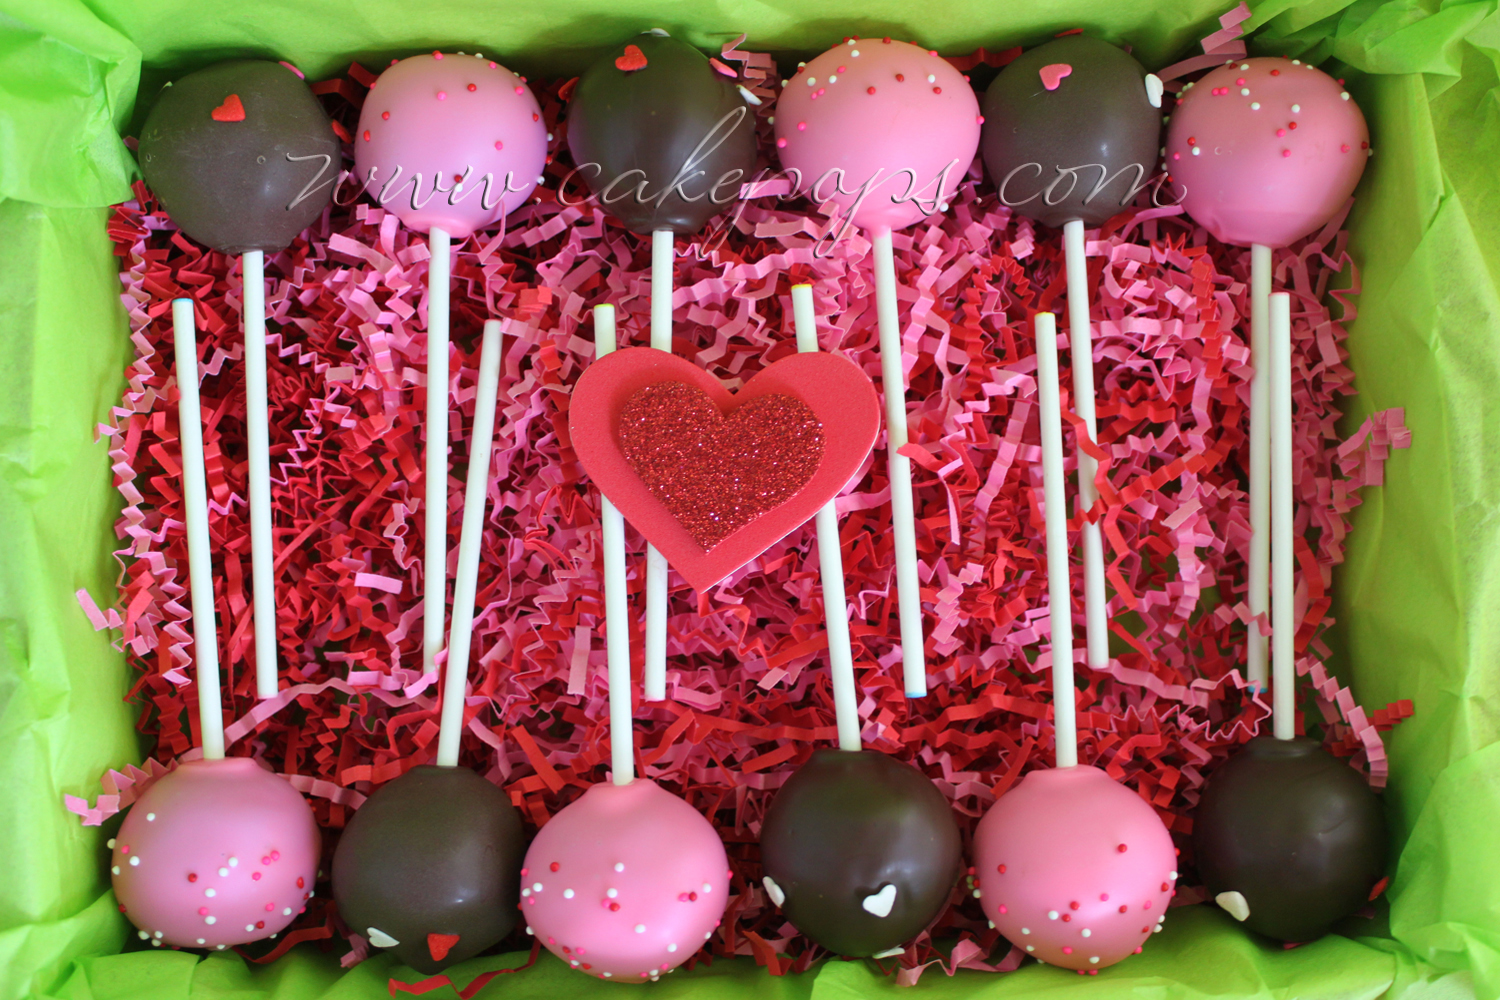 Candy's Cake Pops: Valentine Cake Pops to send to your Loves